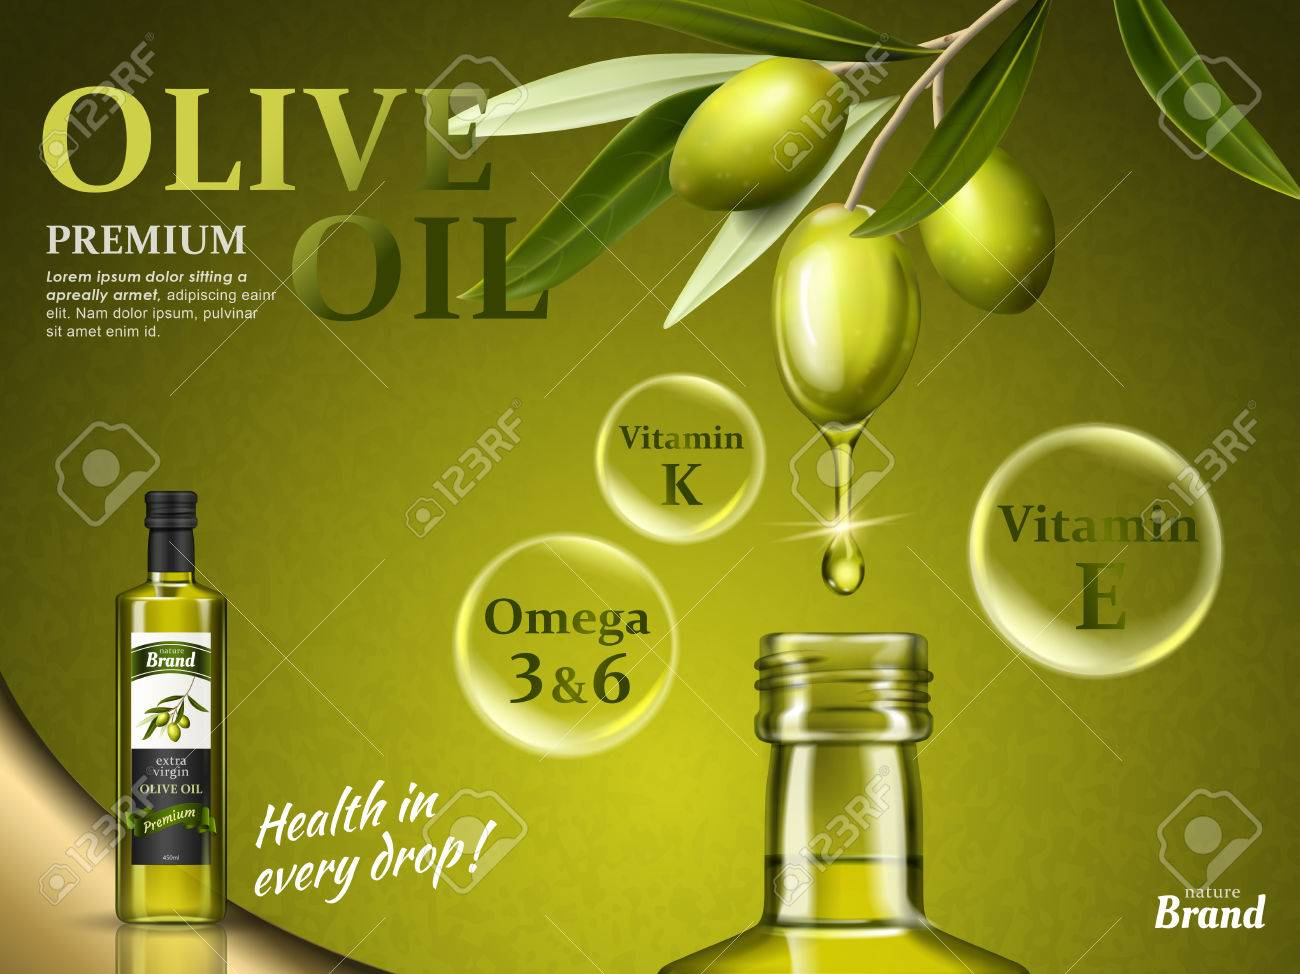 olive oil ad with some of its nutrients and olive fruit elements, 3d illustration - 82508296